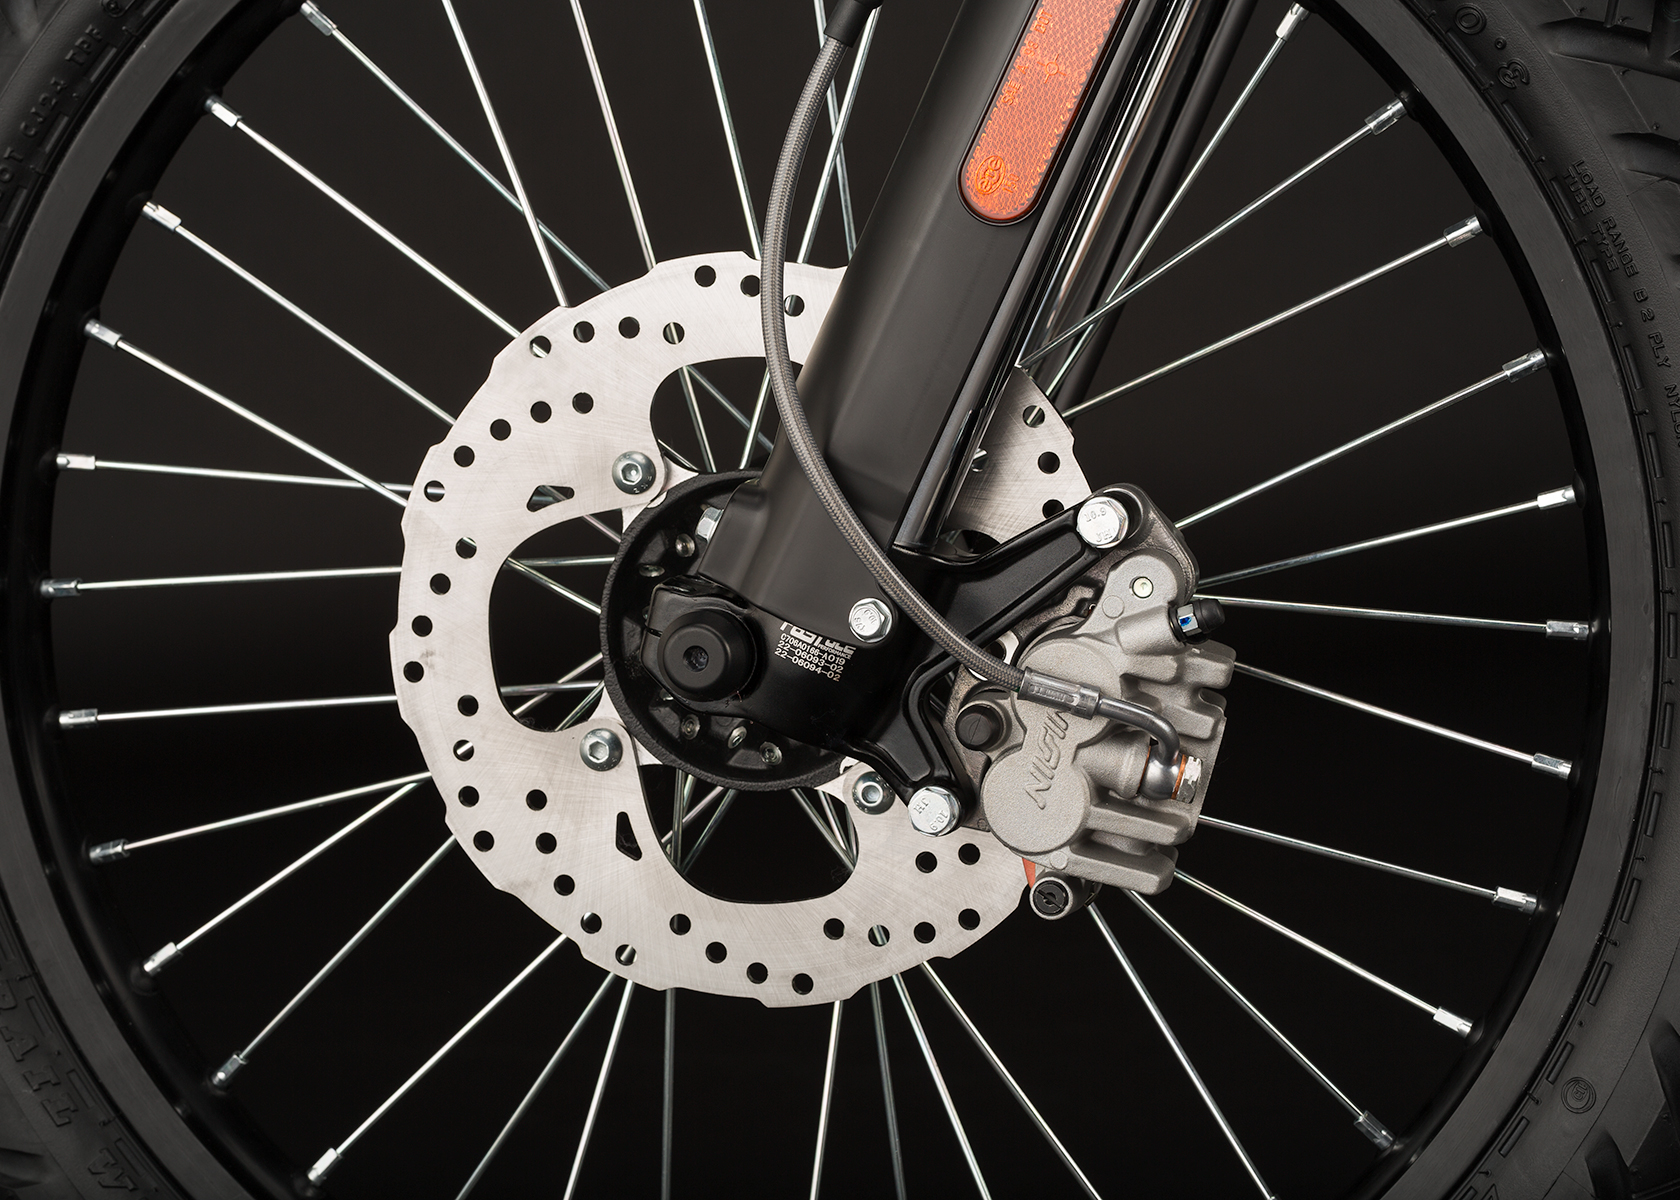 2014 Zero FX Electric Motorcycle: Front Brake